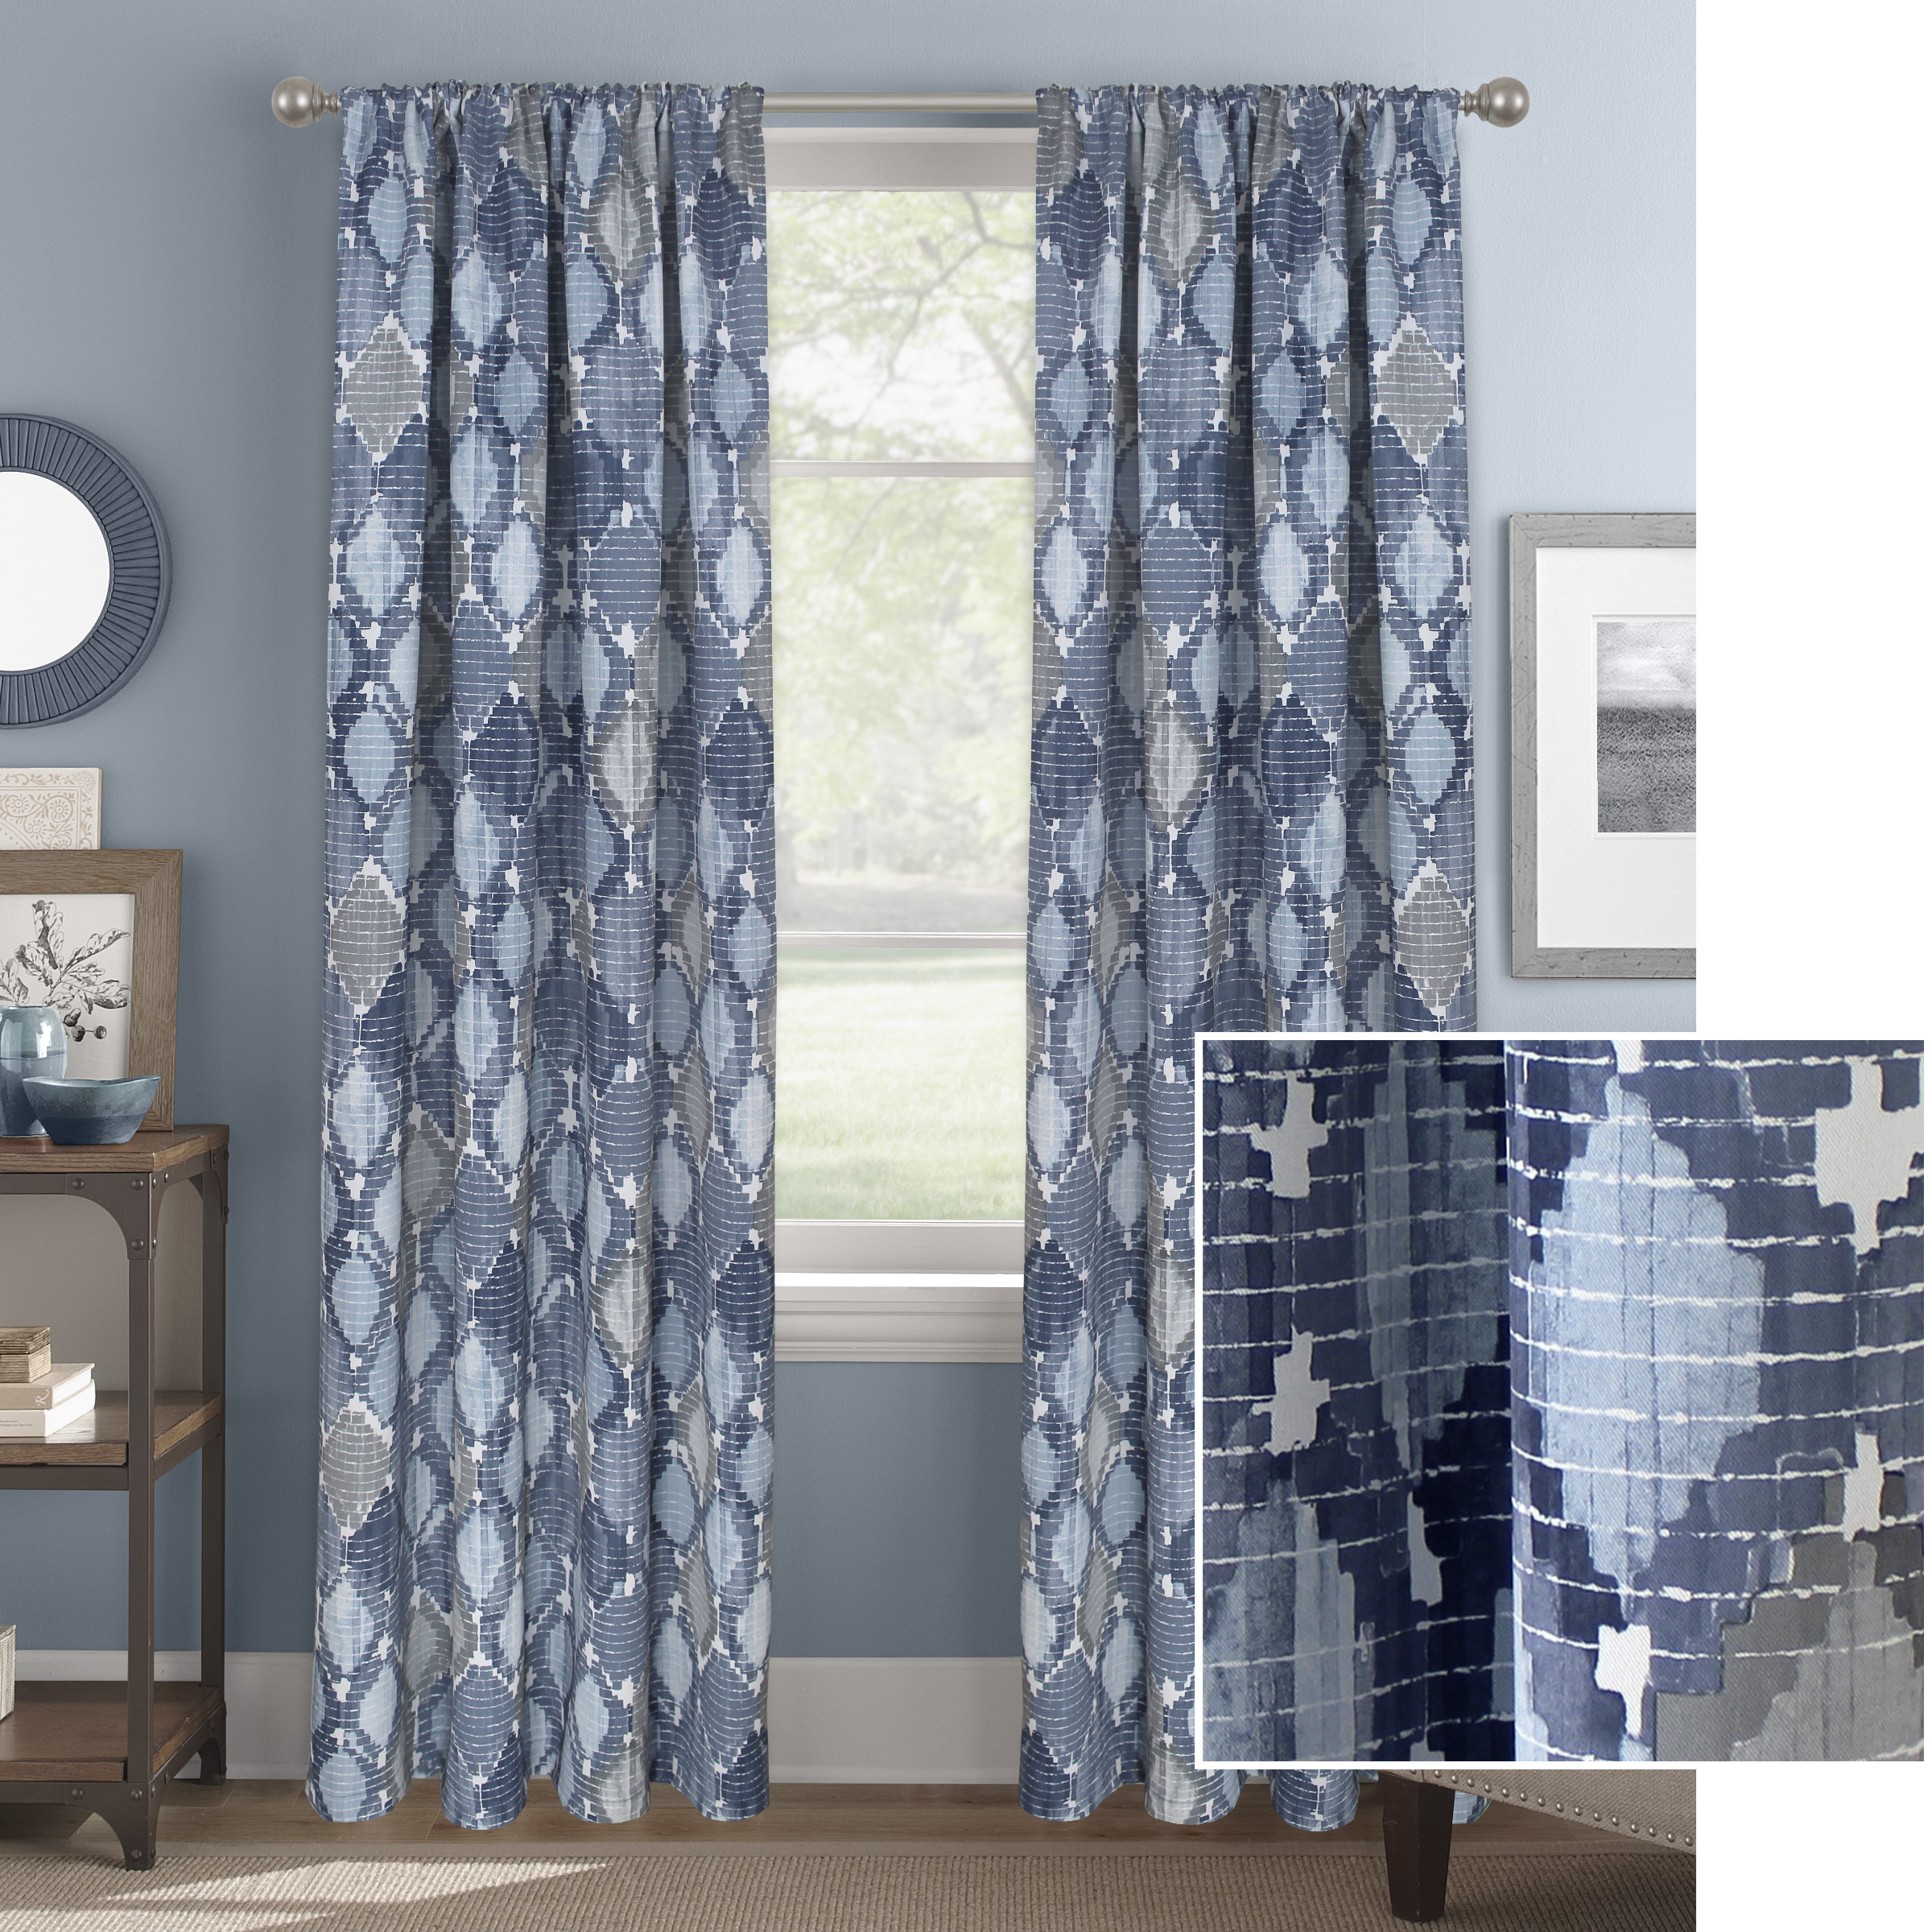 Better Homes & Gardens Dyed Ogee Room Darkening Window Curtain Panel